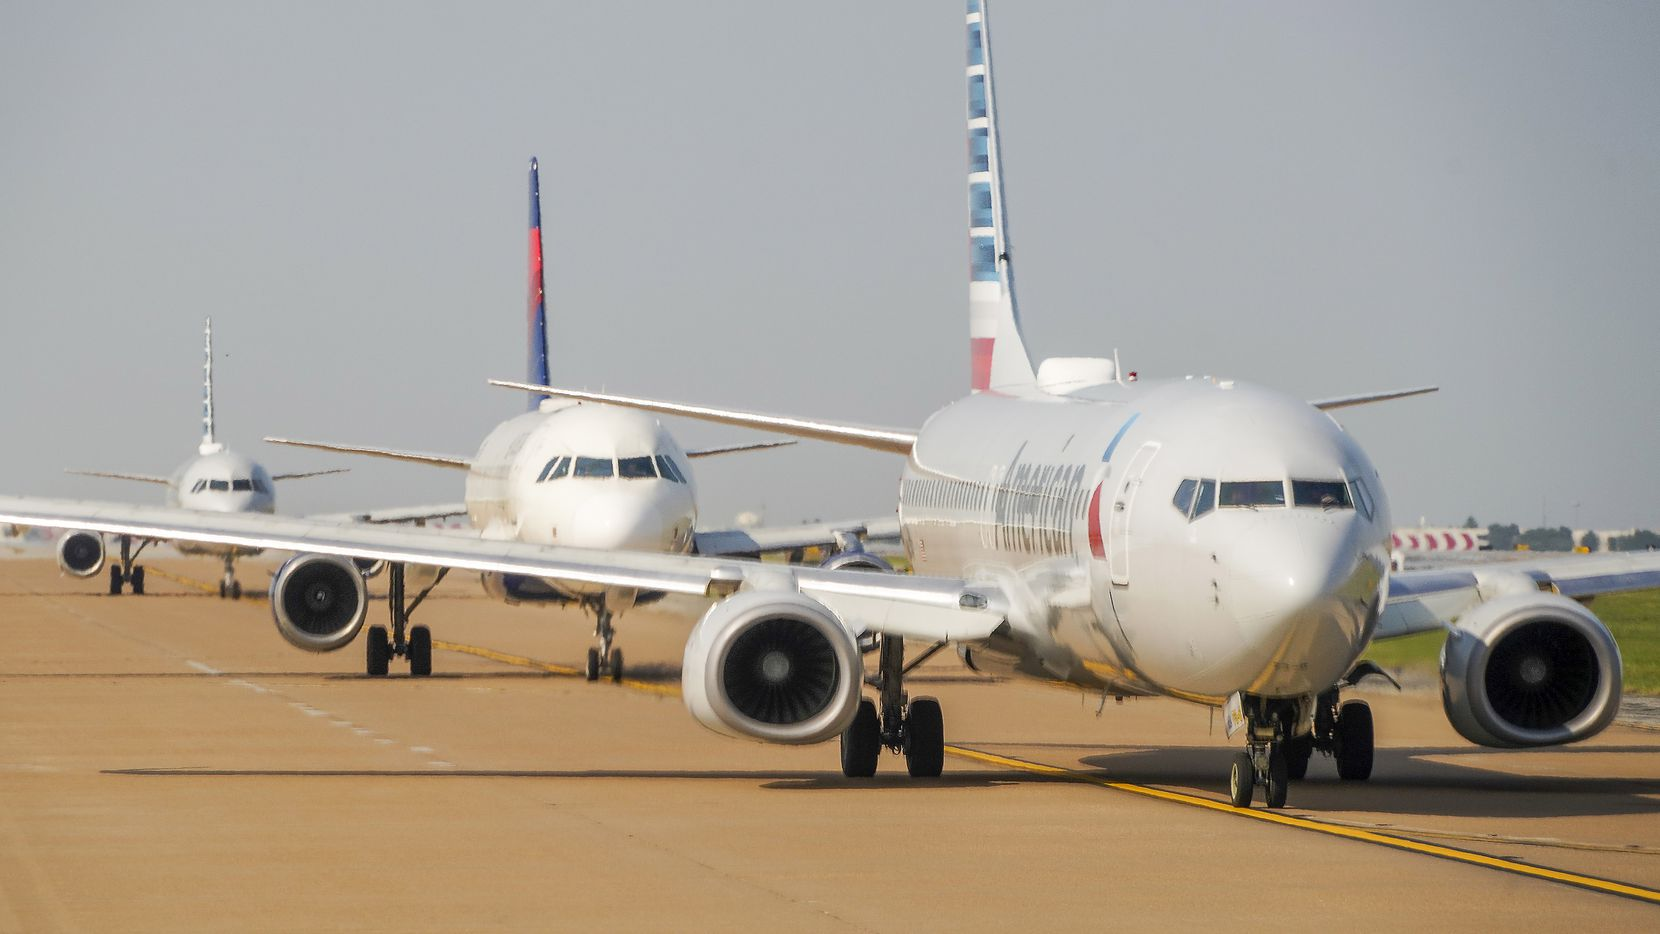 American Airlines and Delta Air Lines jets line up for takeoff at DFW International Airport.